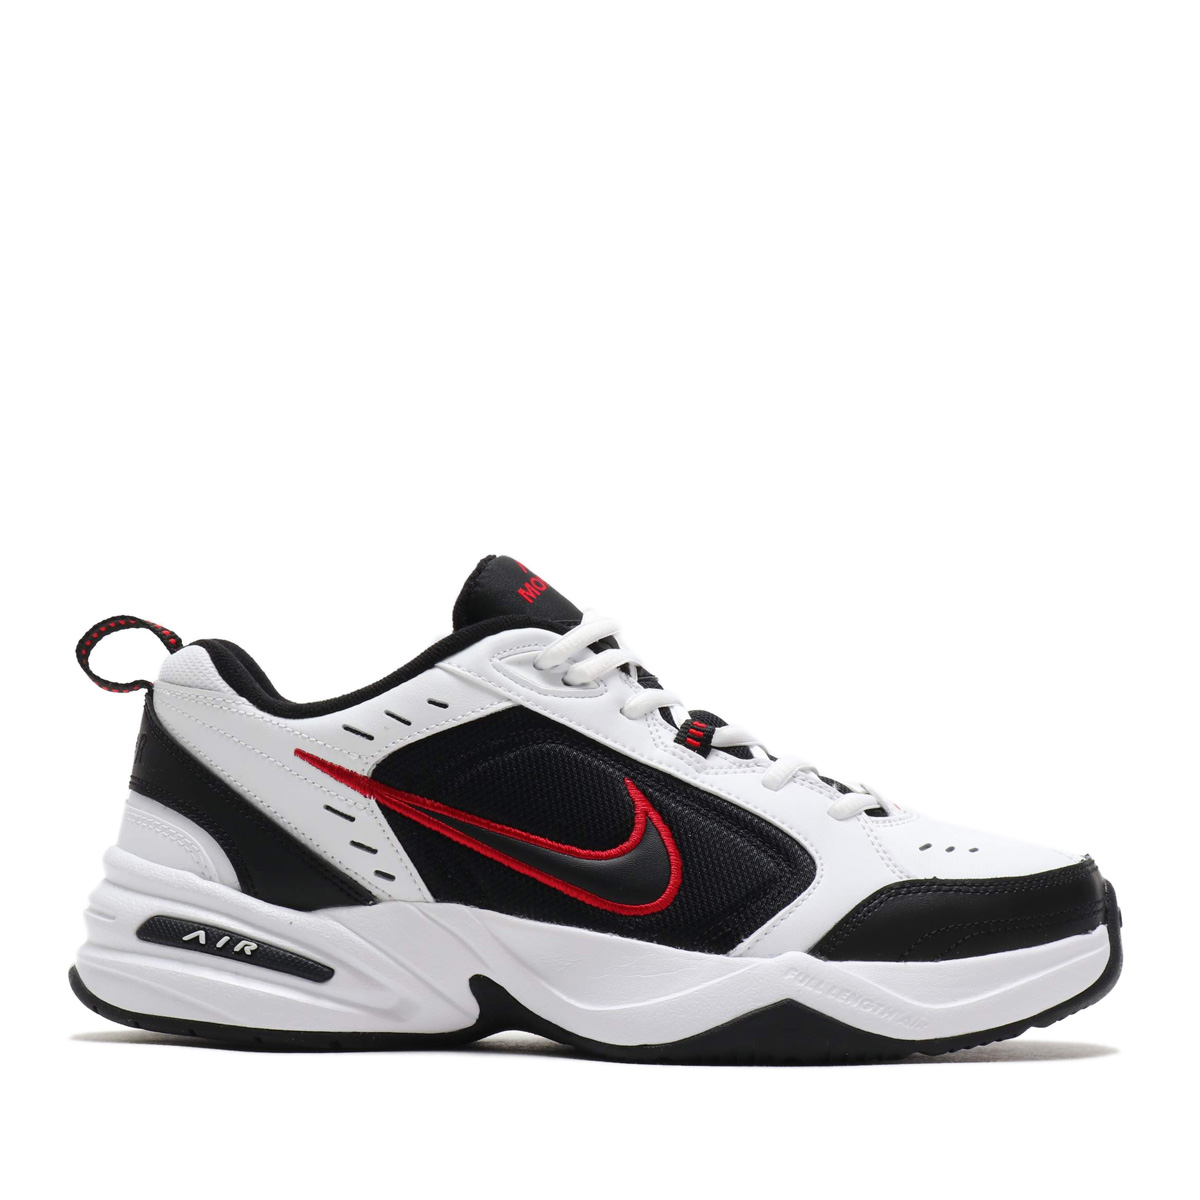 0dfe0b5f0d0d Kinetics  NIKE AIR MONARCH IV (WHITE BLACK) (ナイキエアモナーク 4 ...